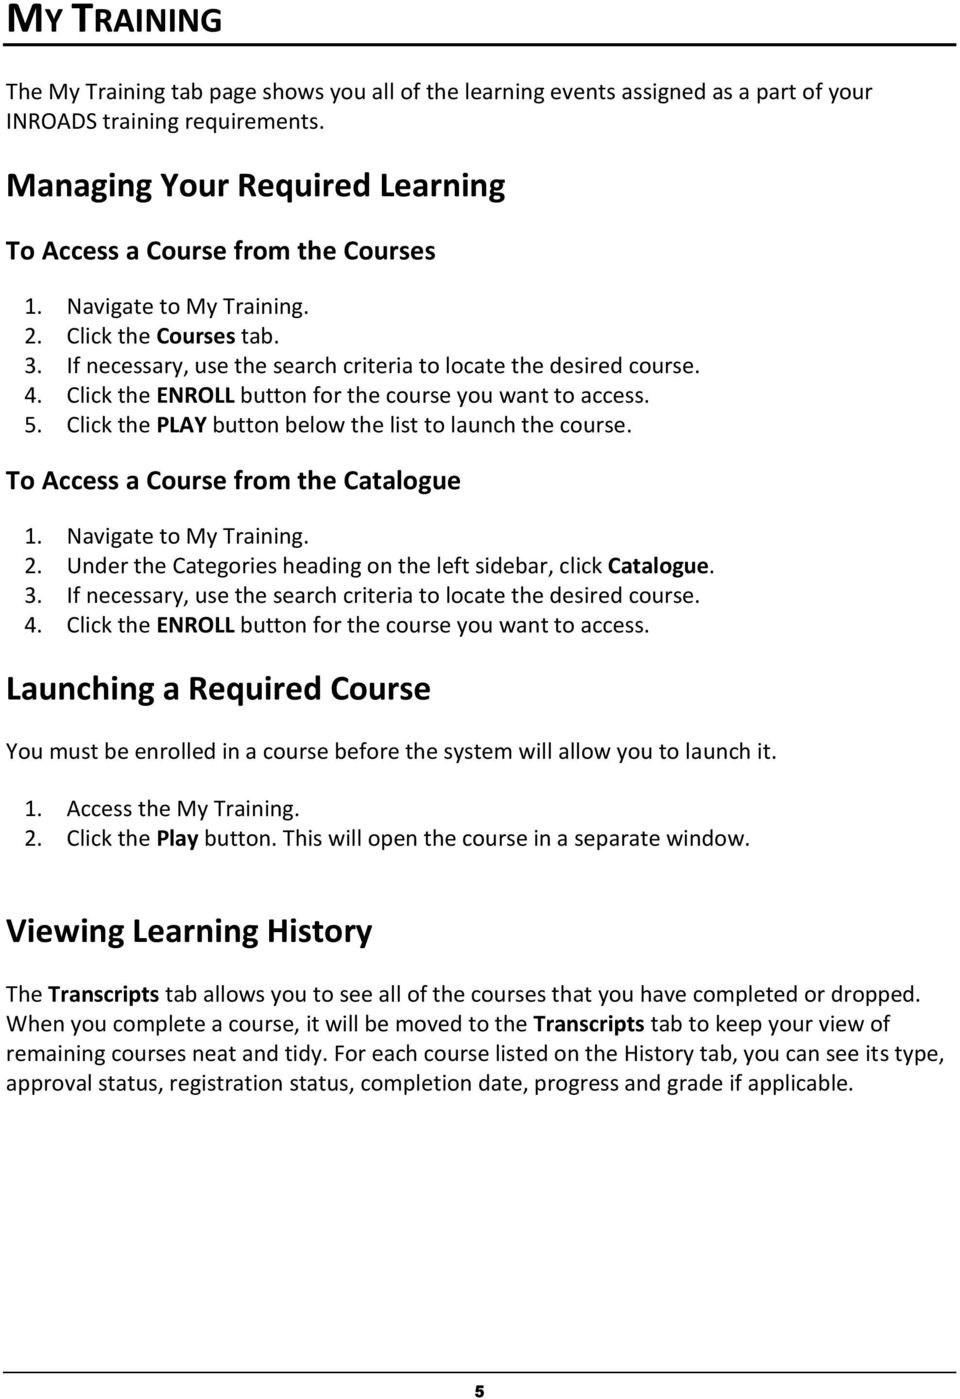 Click the ENROLL button for the course you want to access. 5. Click the PLAY button below the list to launch the course. To Access a Course from the Catalogue 1. Navigate to My Training. 2.